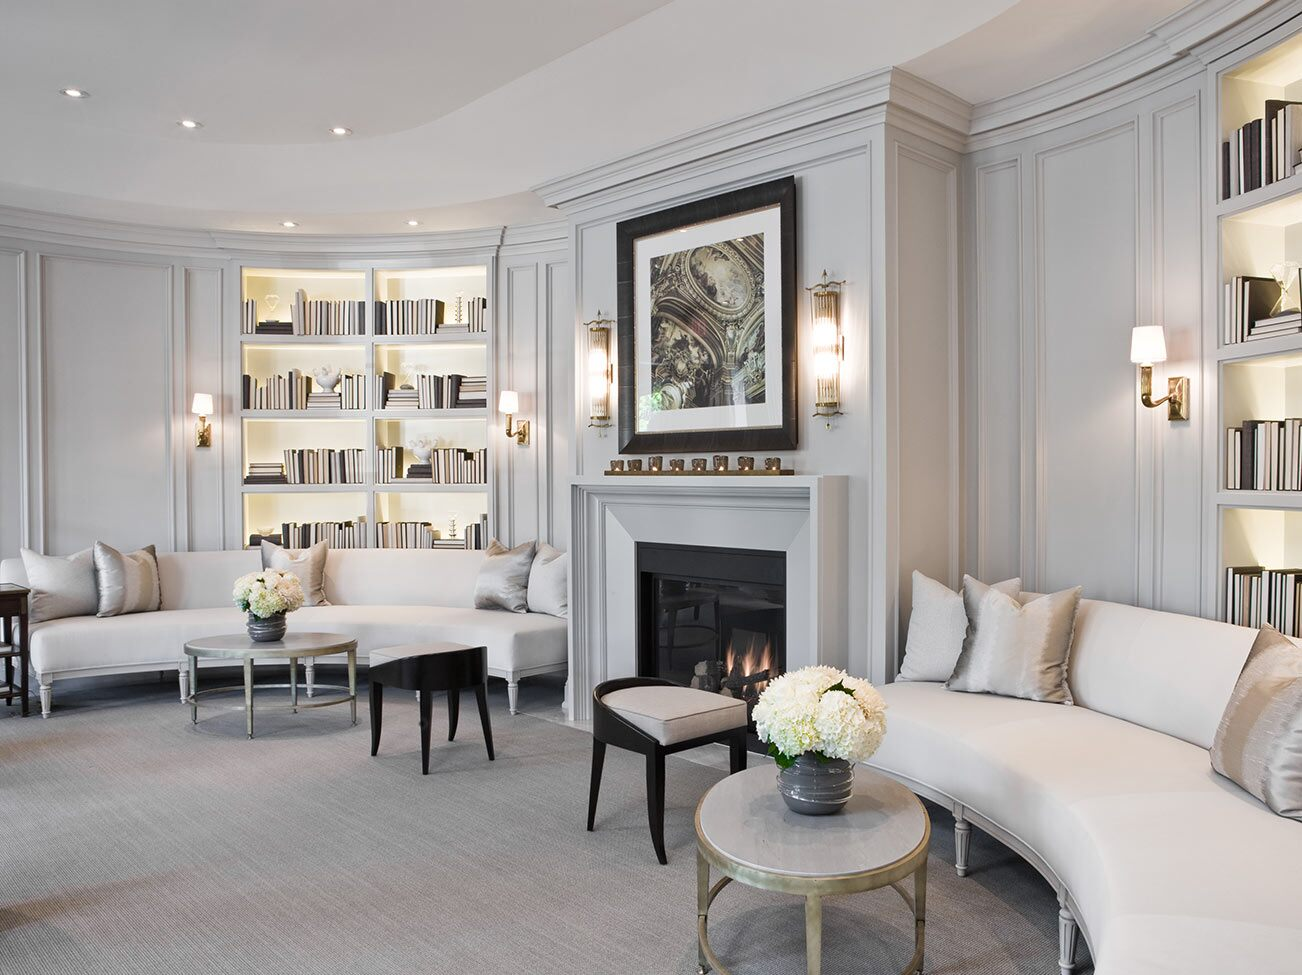 An elegant living room with wall sconces, two matching light gray sofas, and built-in bookcases on each side of a gray fireplace.